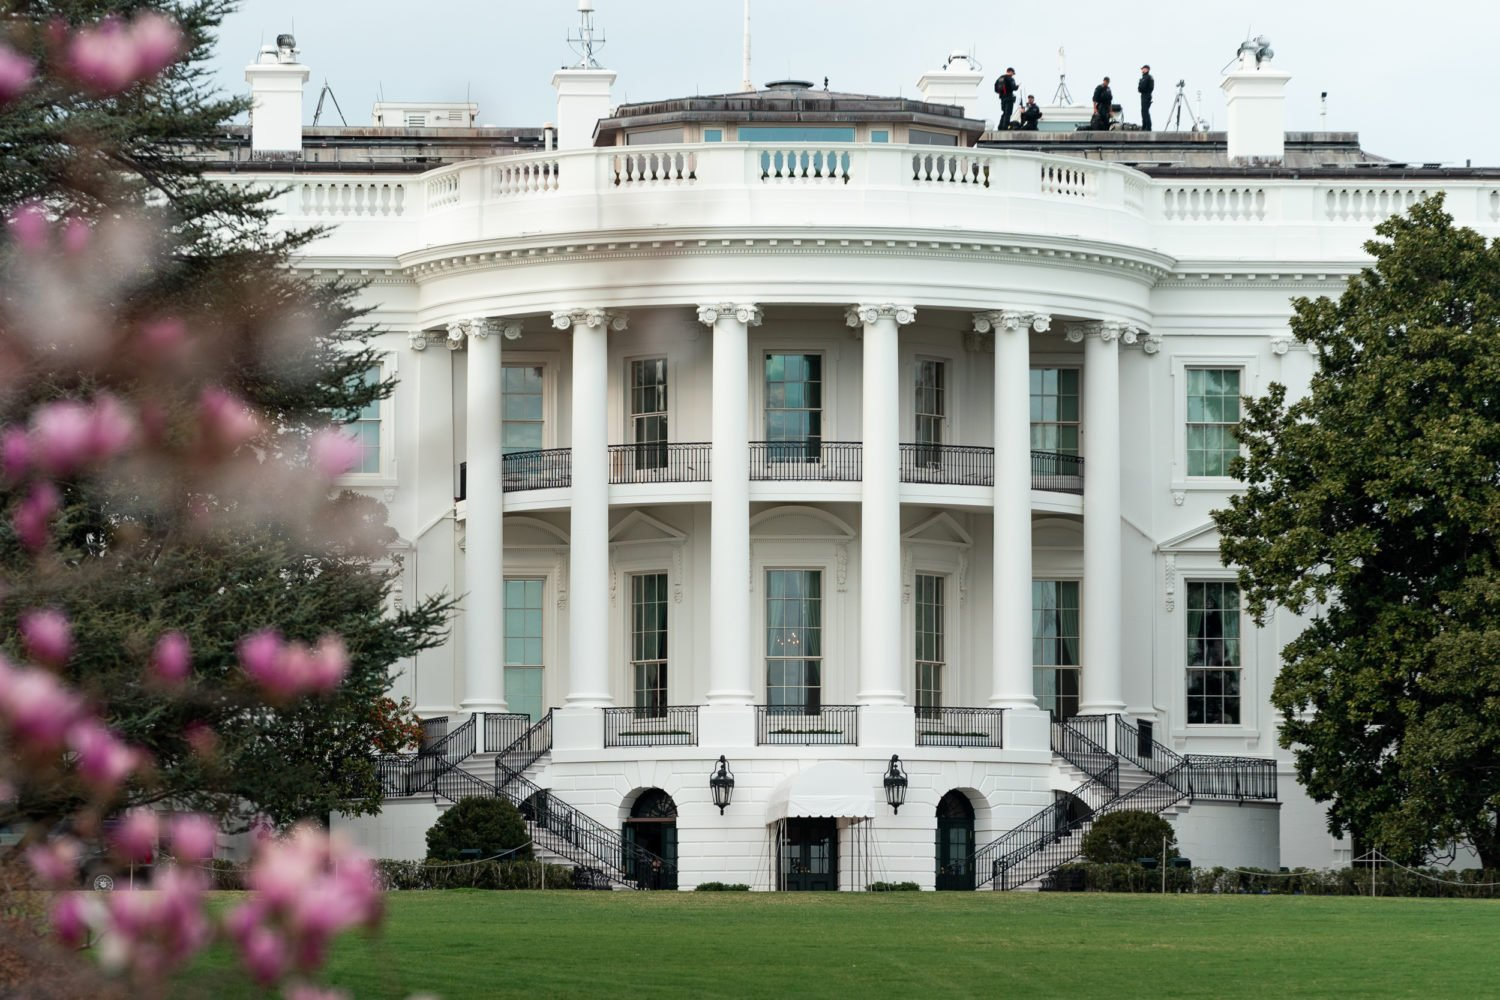 White House approves intelligence brief for Biden: official_Top News_Asia Pacific Daily